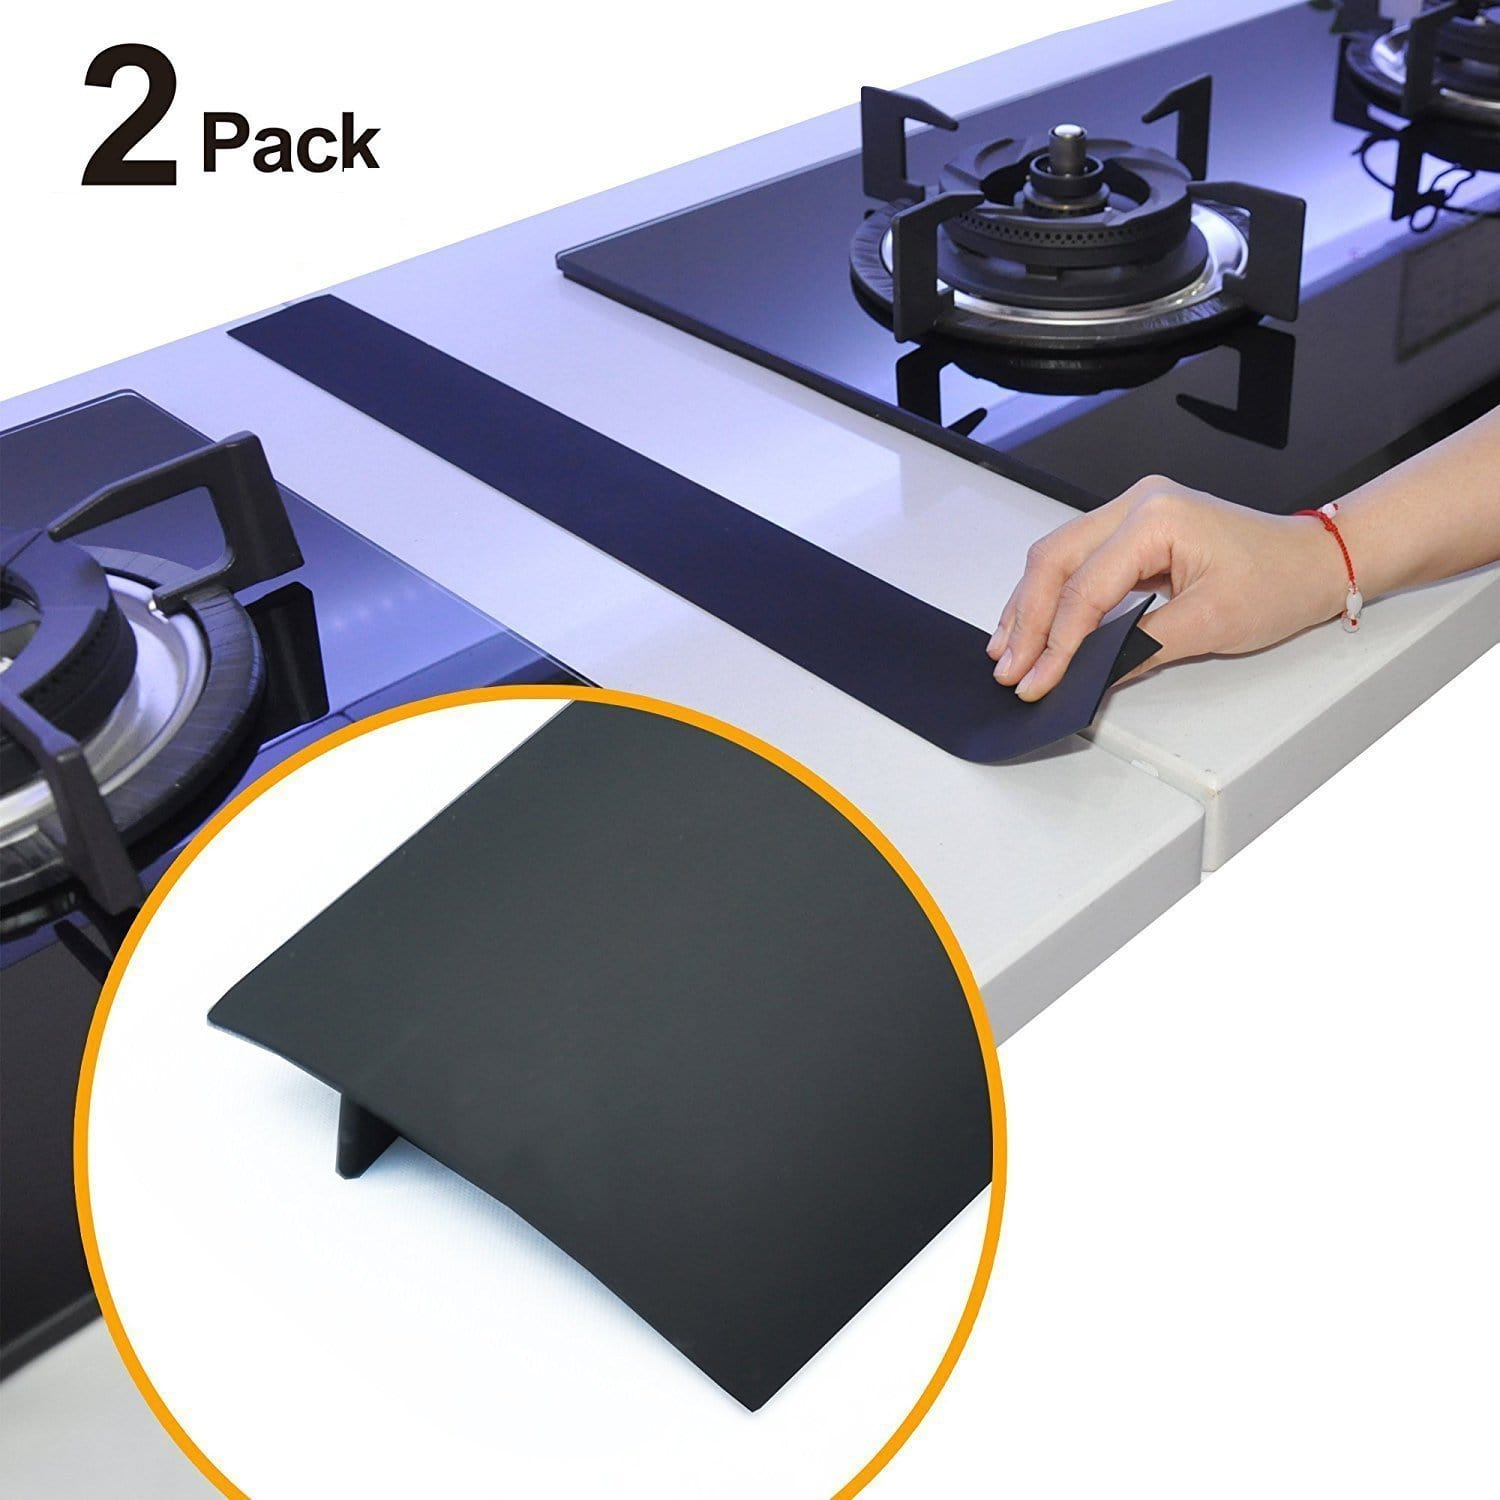 Silicone Stove Counter Gap Cover(2pcs)